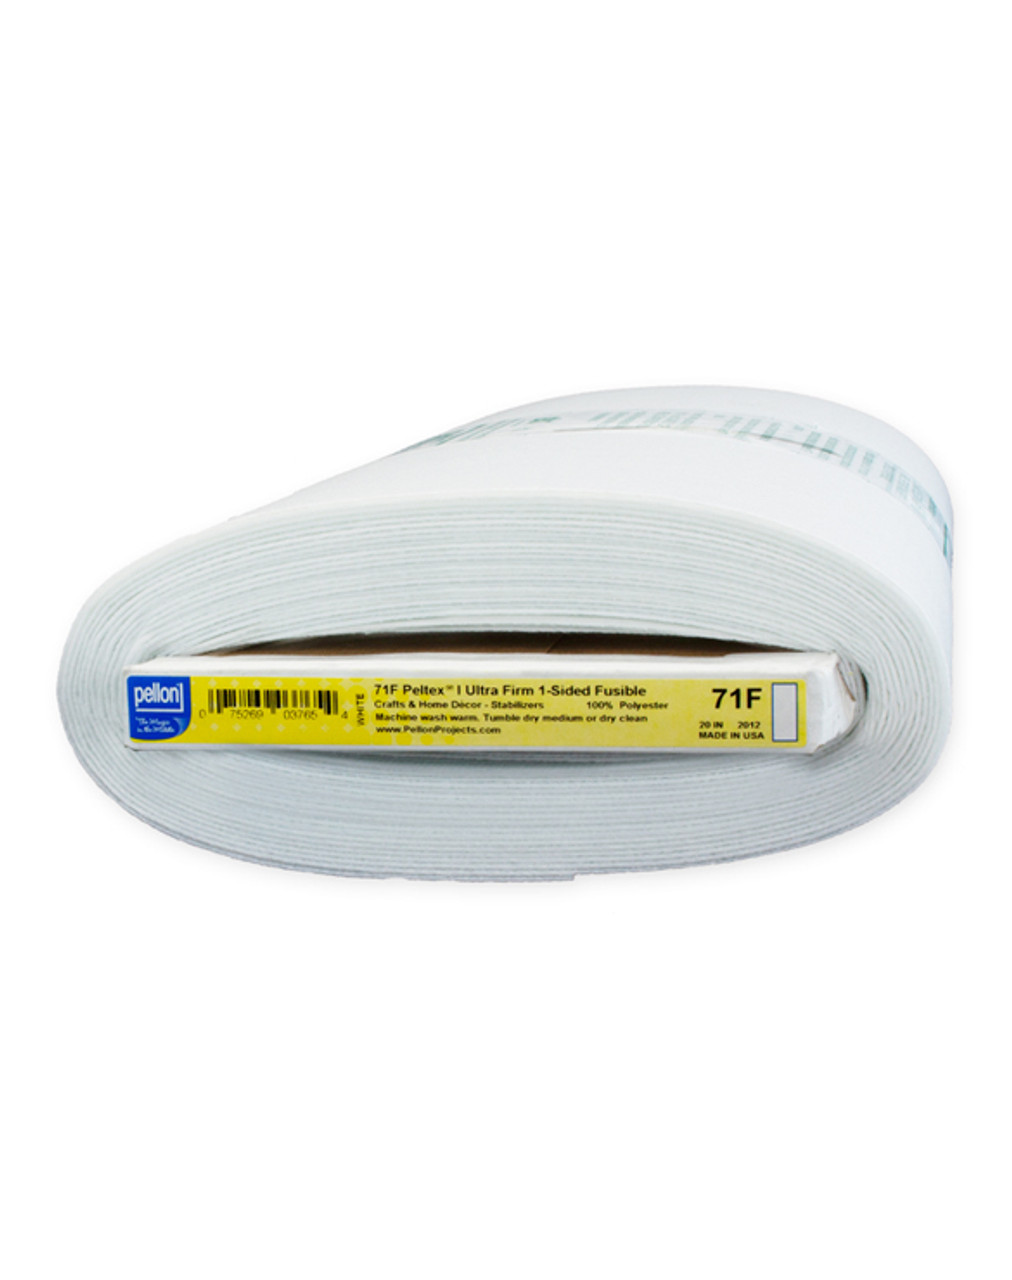 71F Peltex One-Sided Fusible Ultra Firm Stabiliser